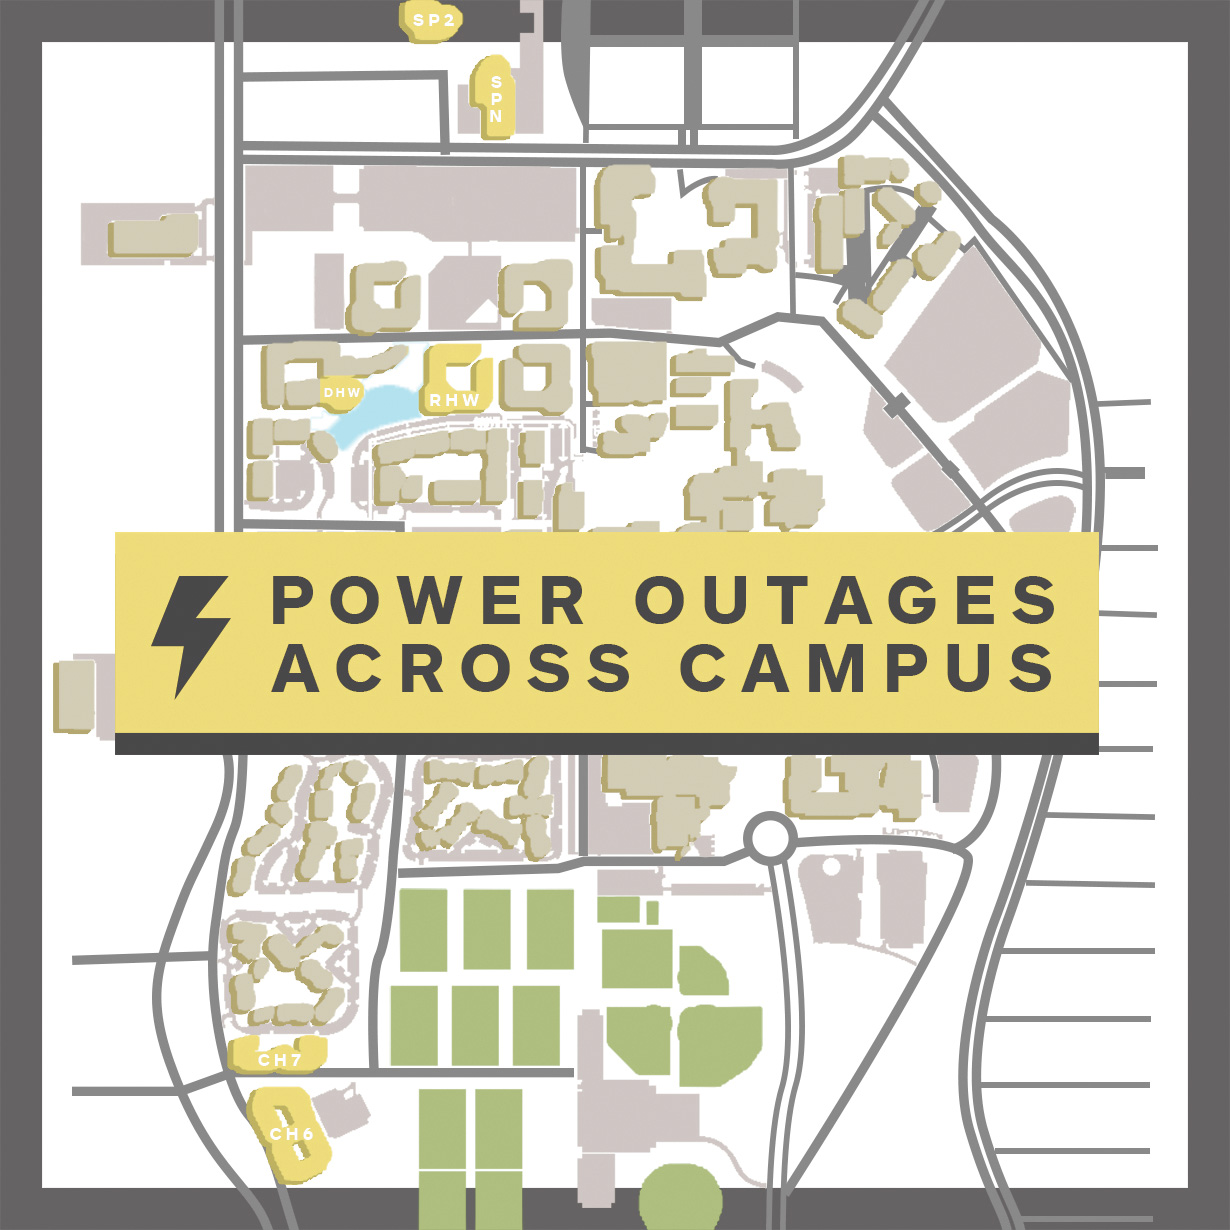 Wind causes power outages